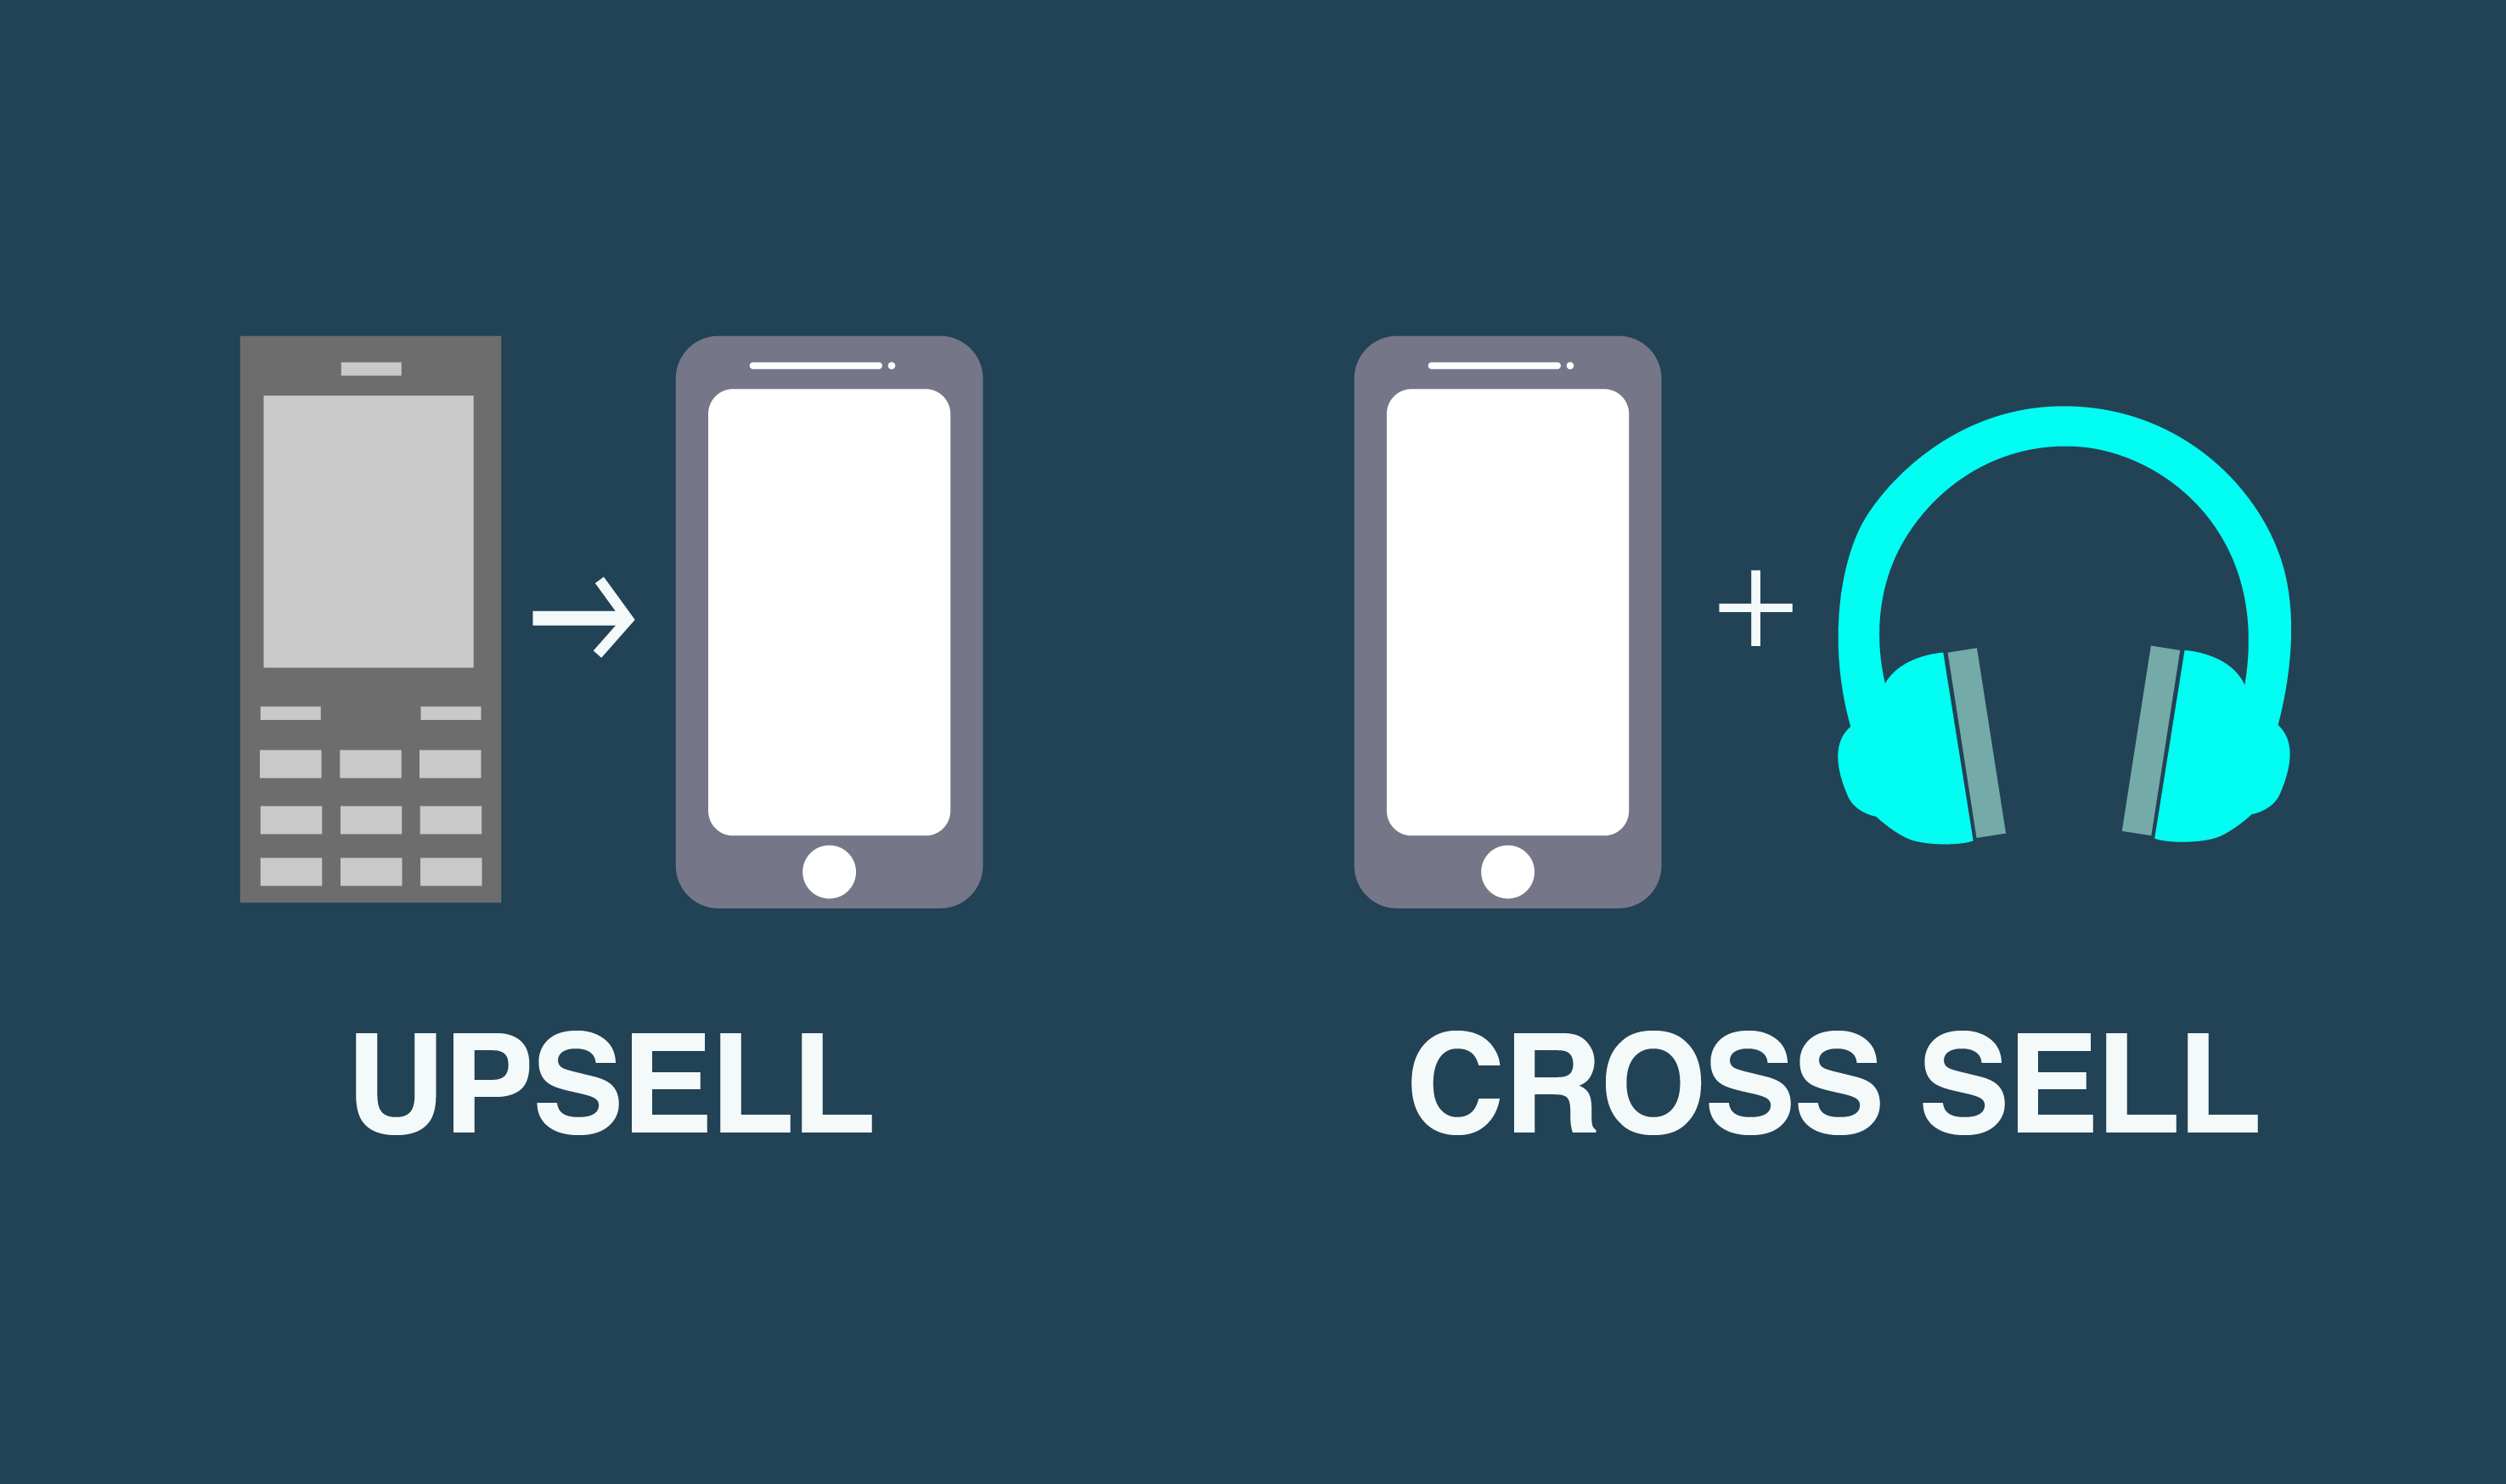 A image comparing up selling and cross selling in app marketing.